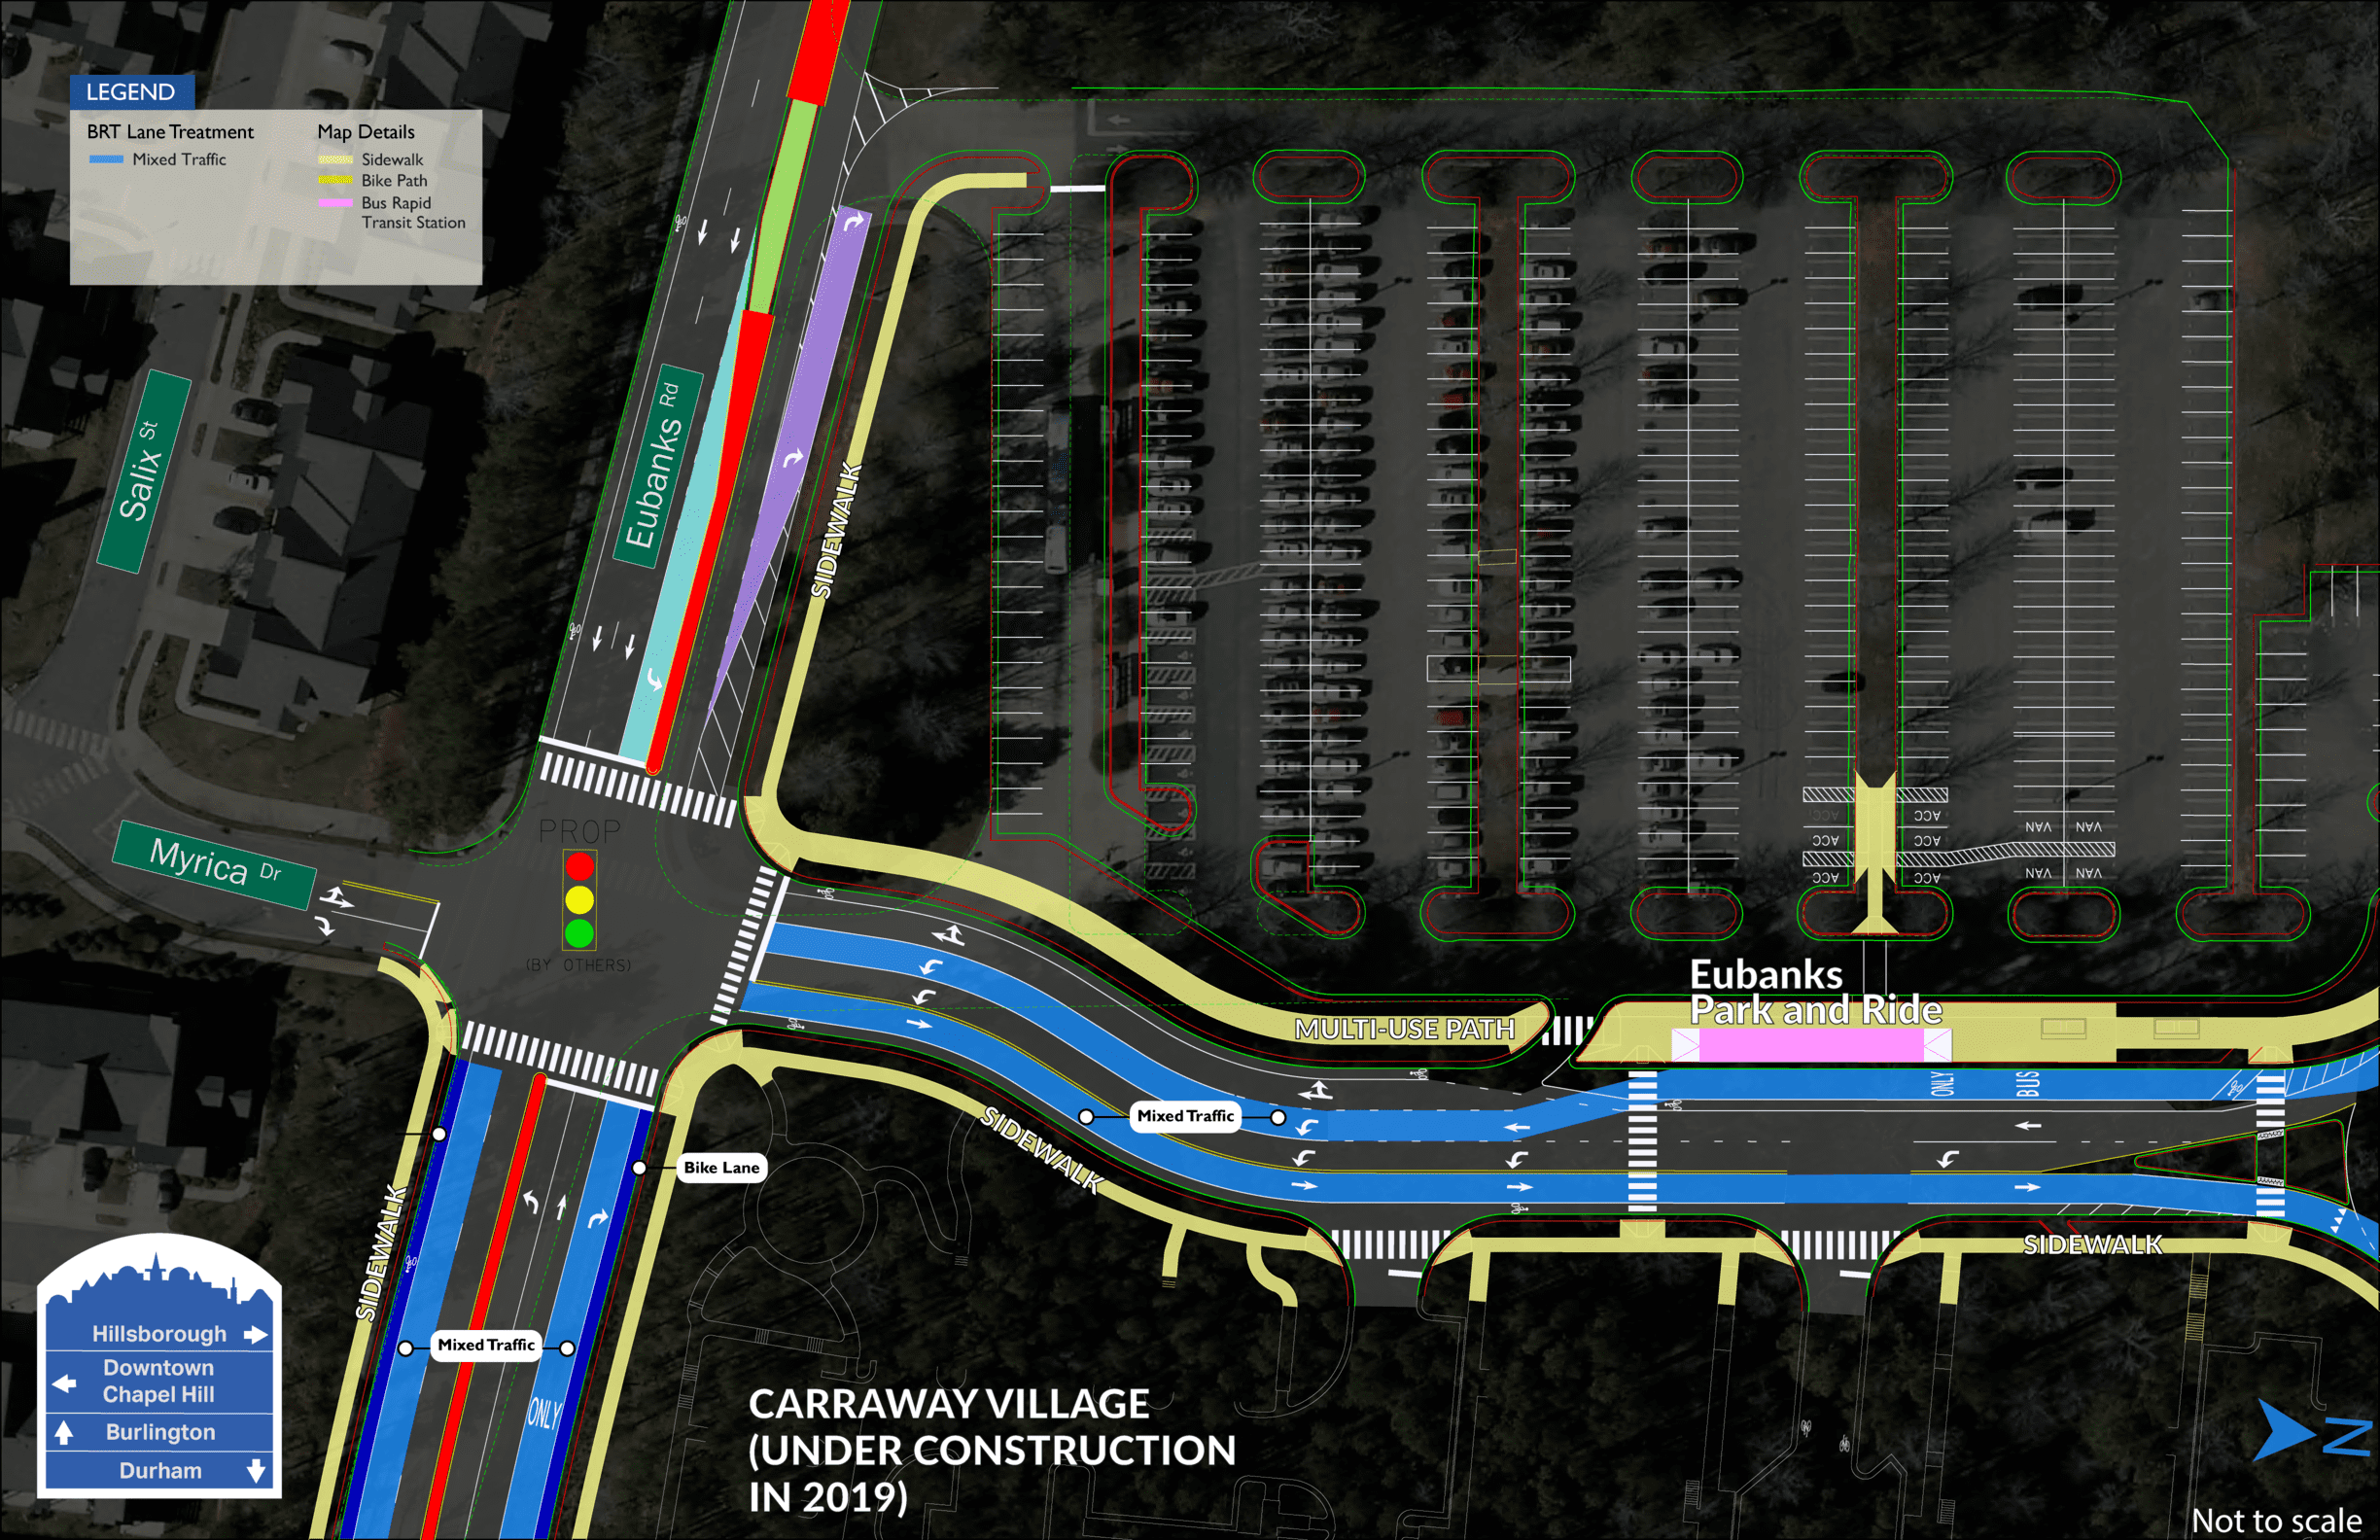 Eubanks Park and Ride BRT map showing one station on Myrica Street in front of the park and ride lot.